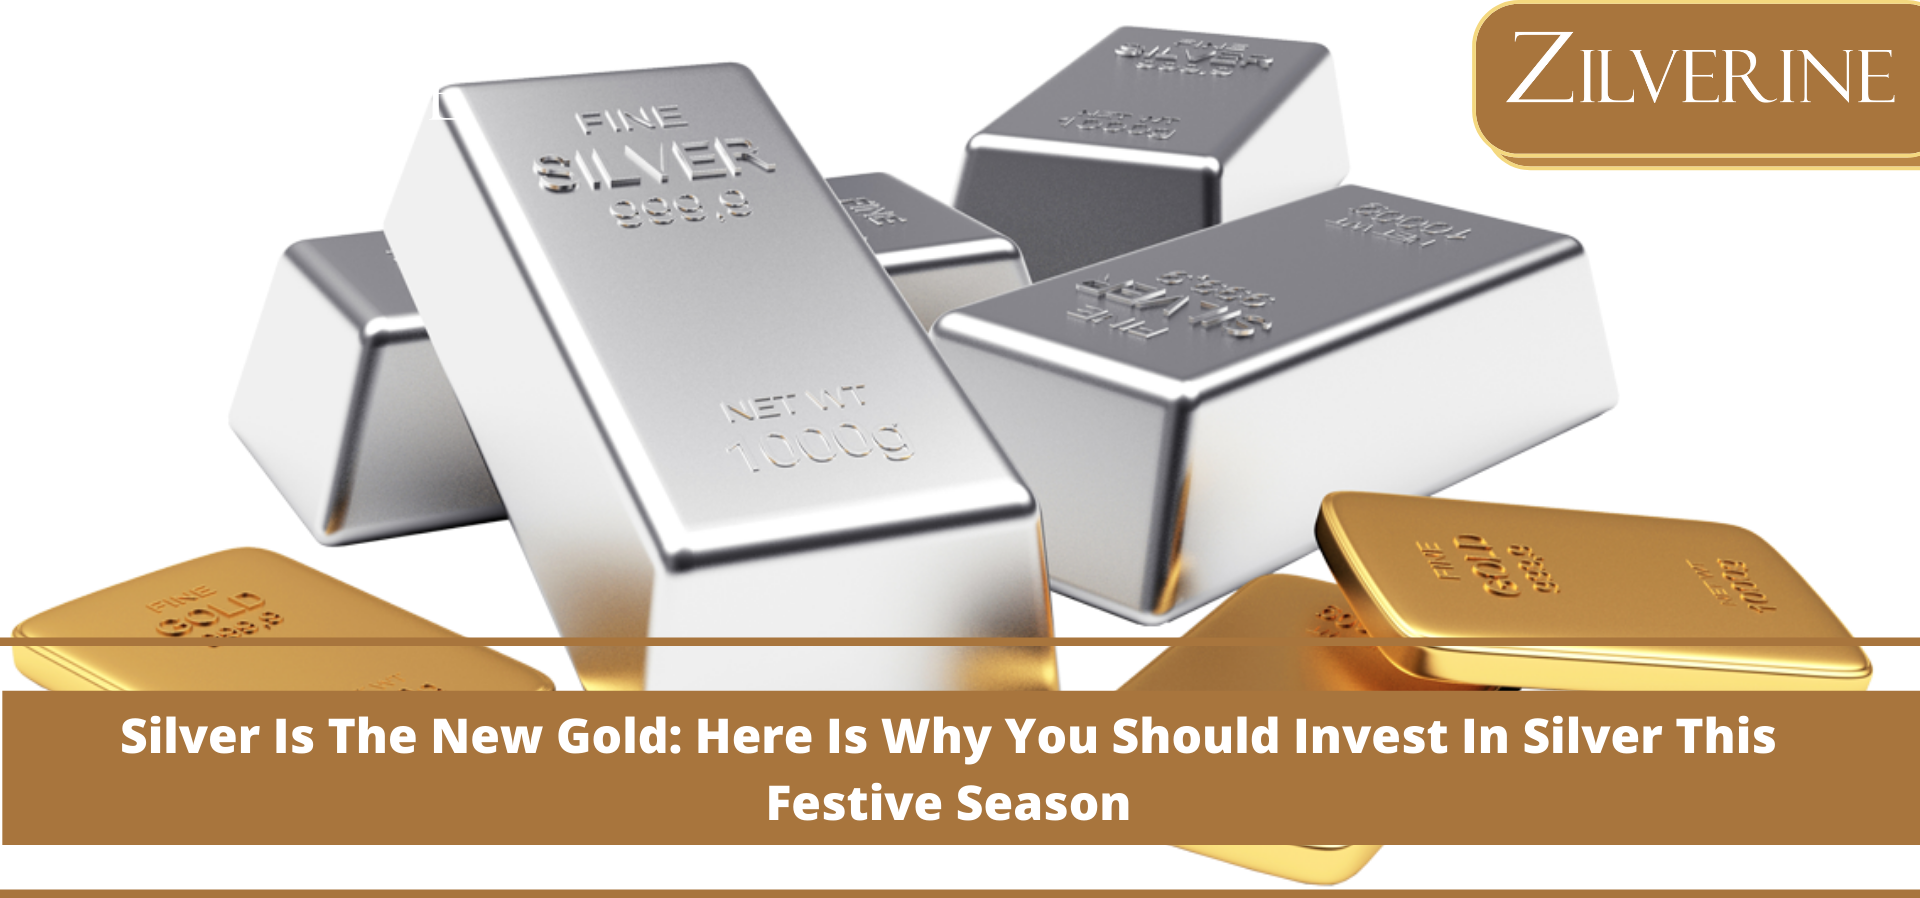 Silver Is The New Gold: Here Is Why You Should Invest In Silver This Festive Season